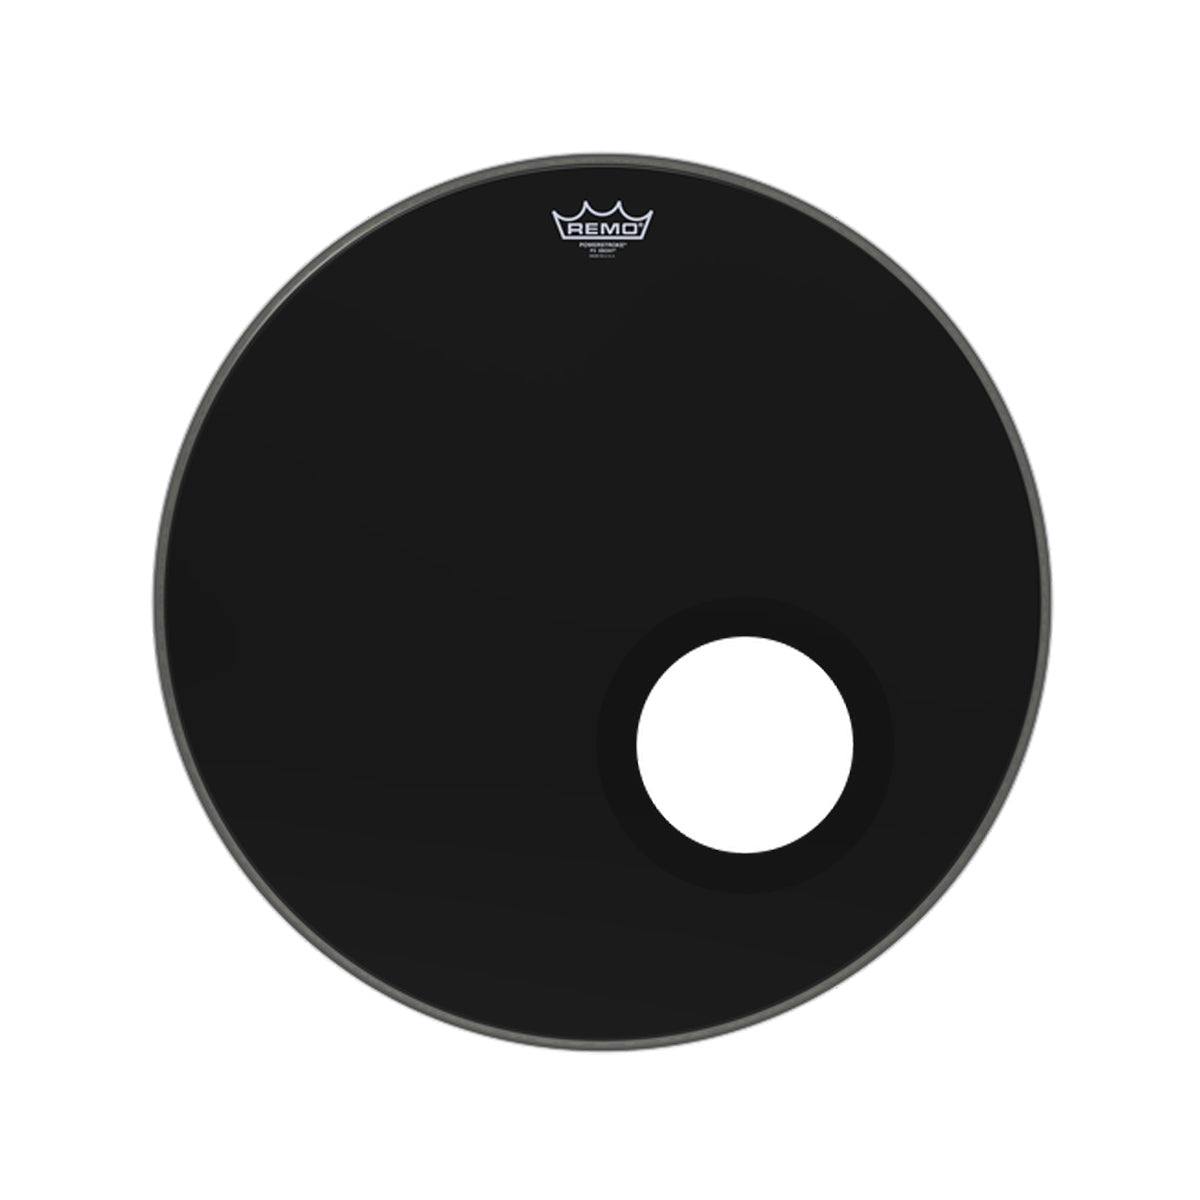 Remo P3-1022-ES-DM 22inch PS3 Powerstroke 3 w/ Black Dynamo Drum Head Skin